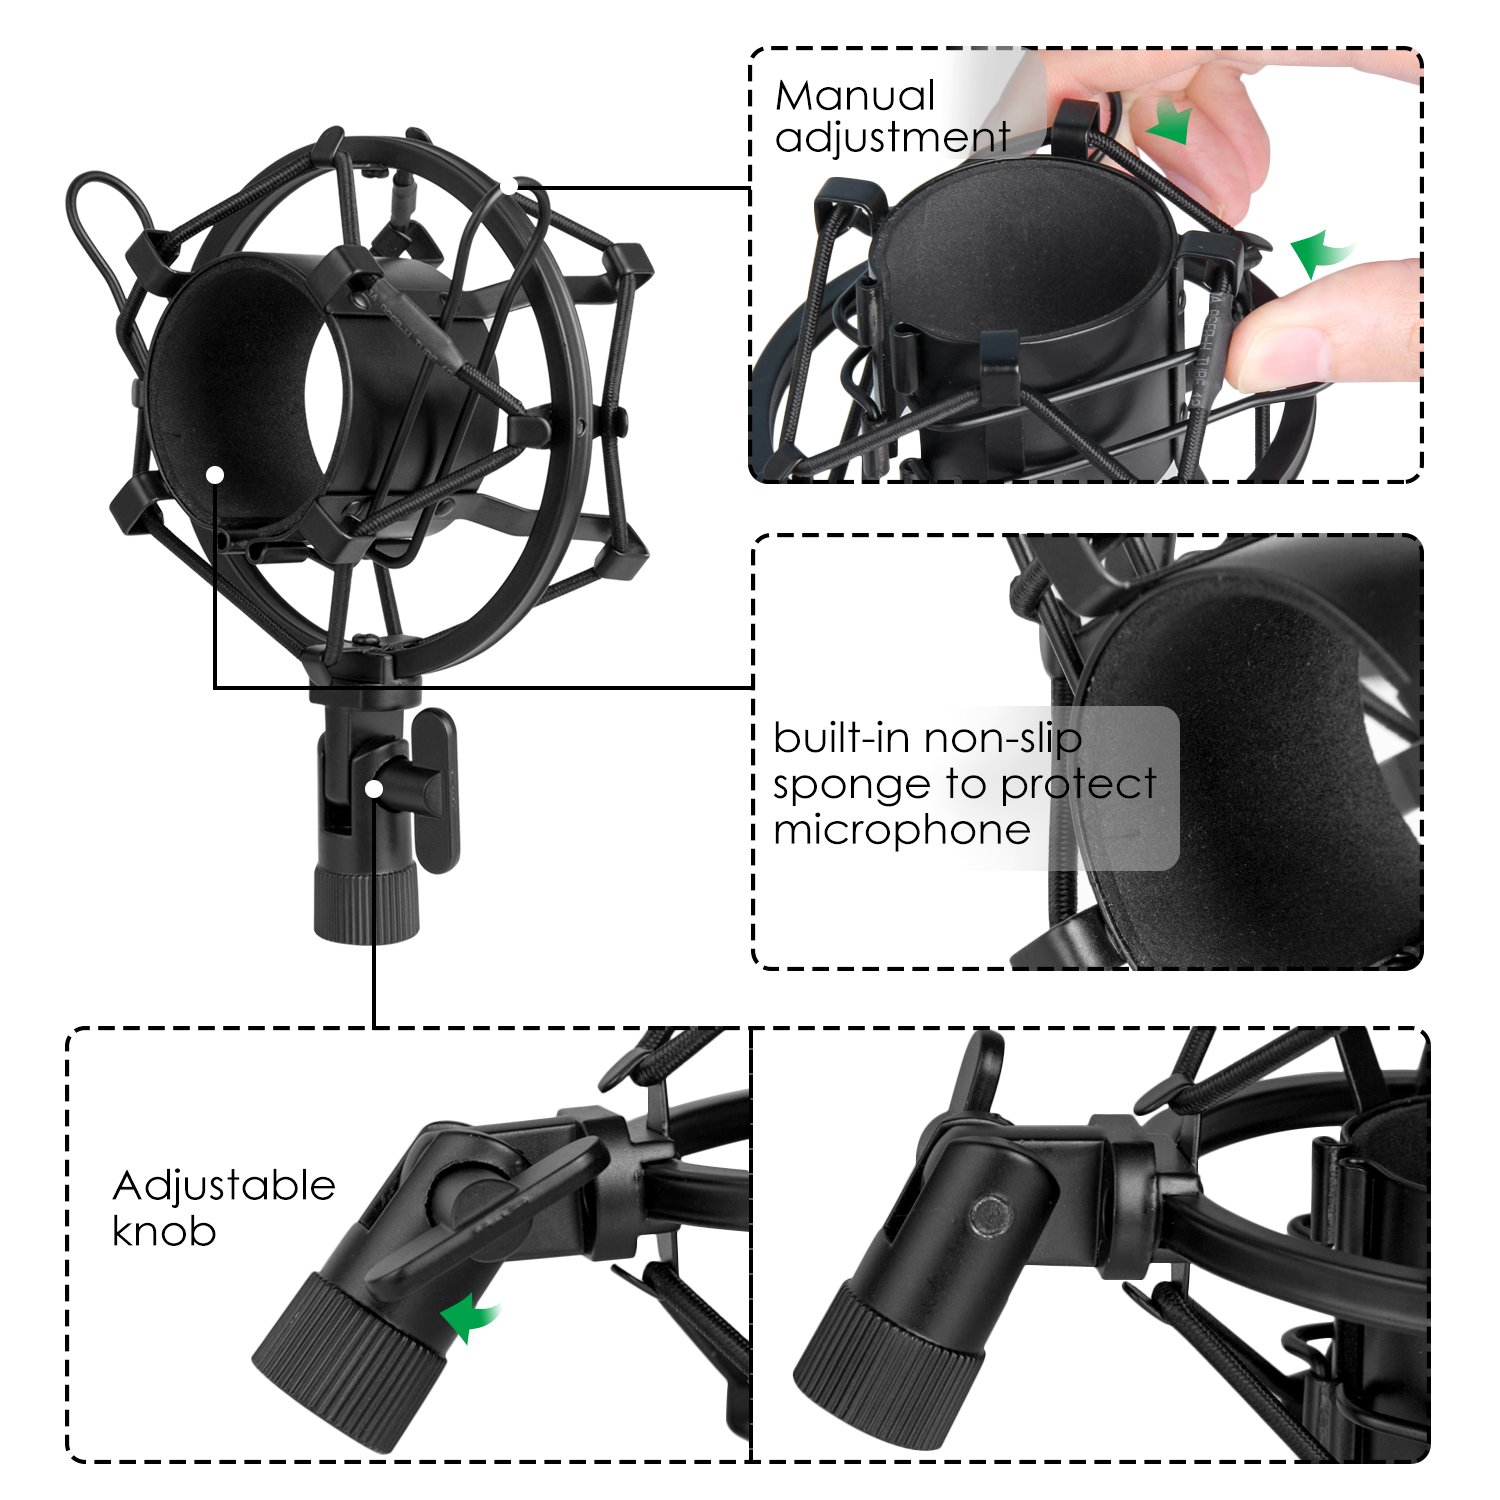 Mugig Mic Shock Mount with Pop Filter for Vocal Recording and Radio Broadcasting, Anti Vibration Suspension Mic Mount Holder Clip for Diameter 41mm-47mm Microphone